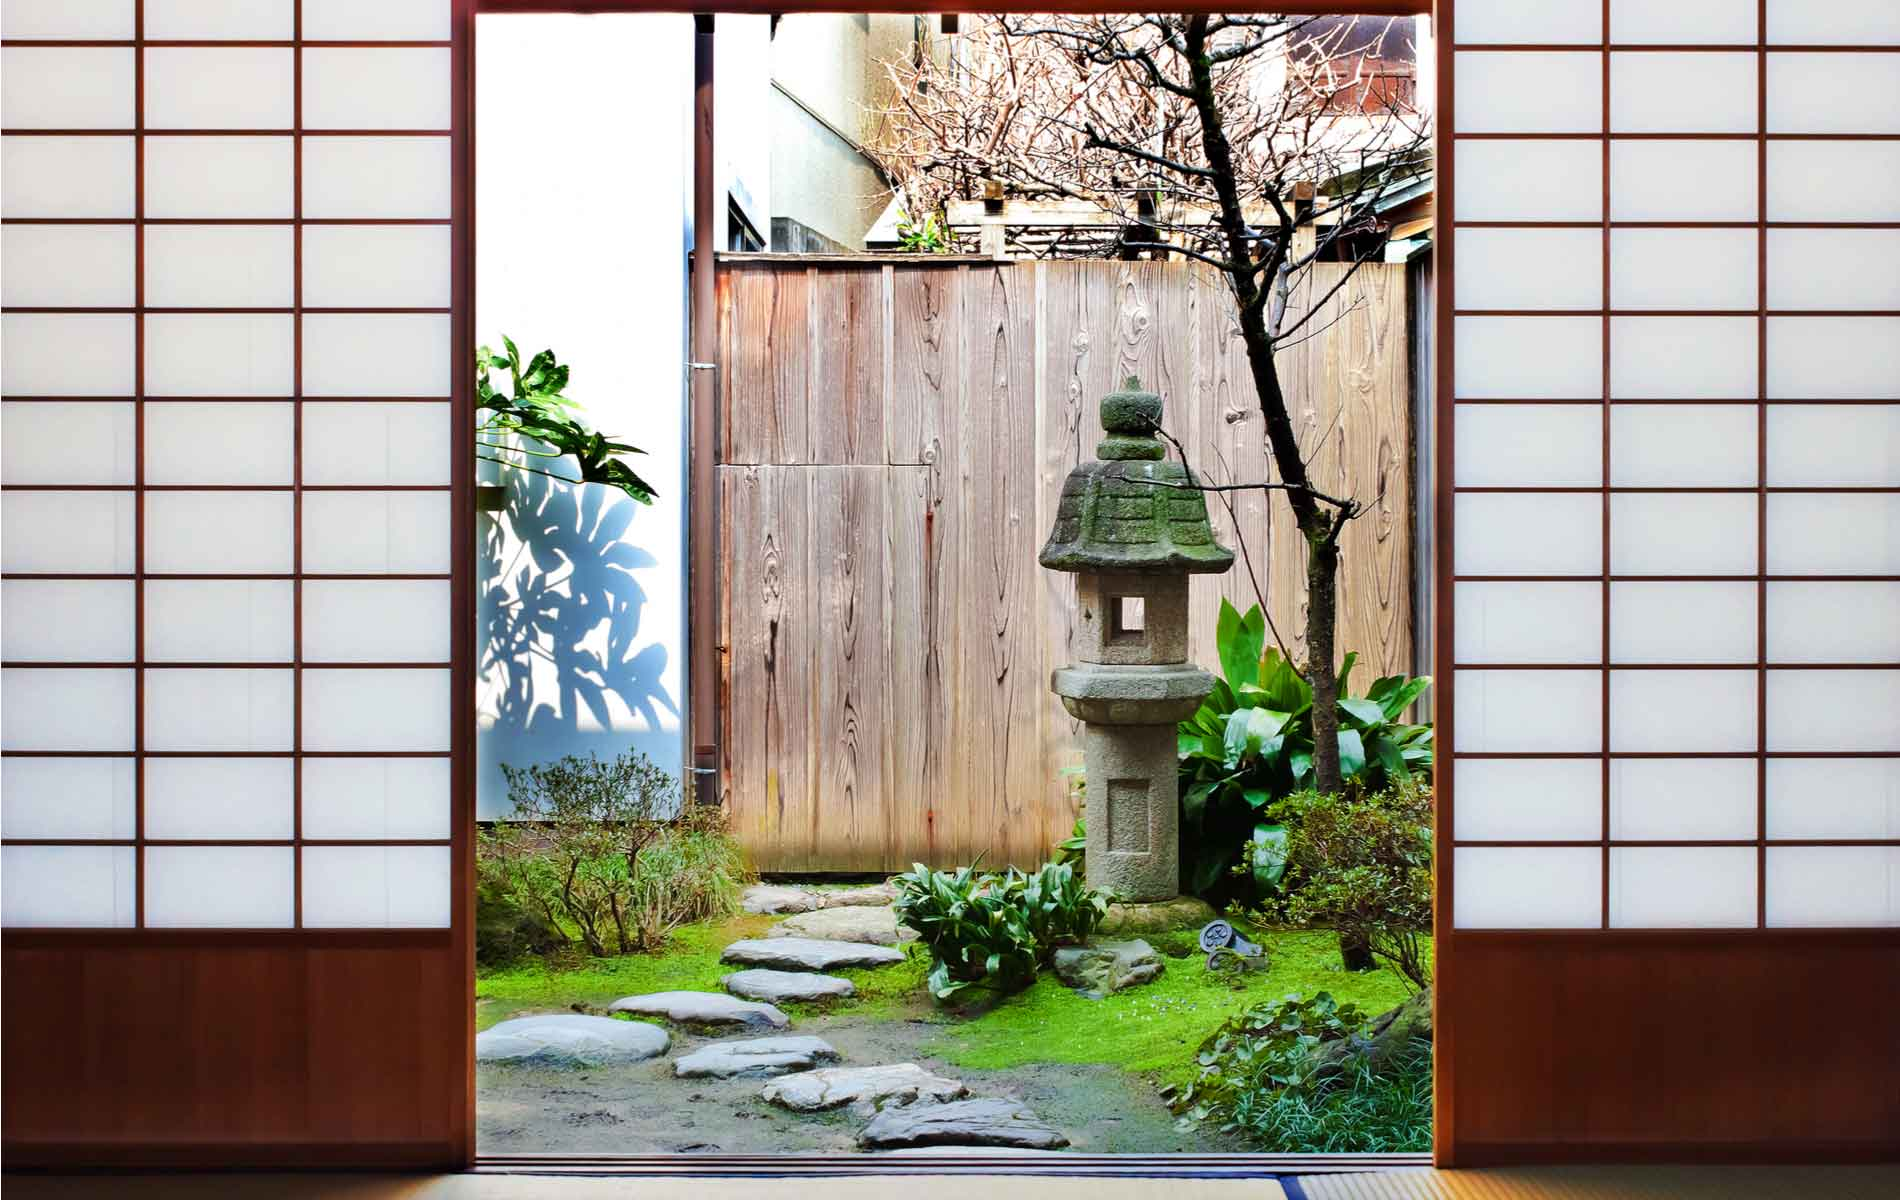 A view to the garden in a Japanese tea house in Kanazawa, Japan